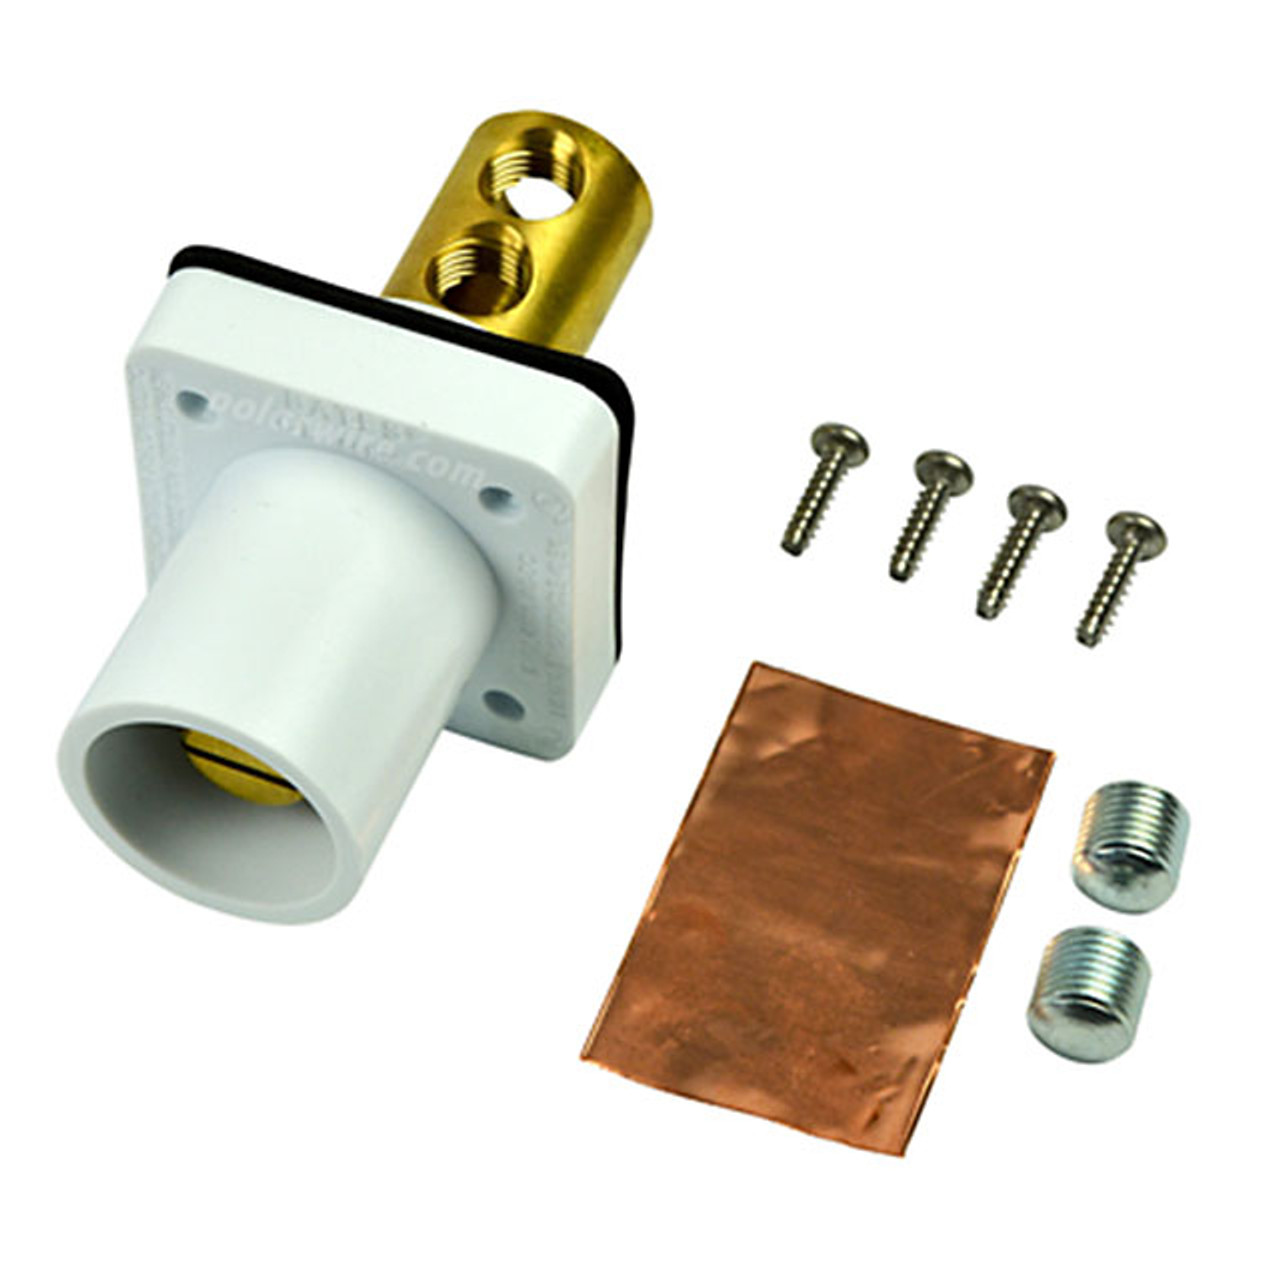 Marinco white 400A CL 16 Series male single pin panel mount cam lock connector with set screw for 2-2/0 AWG cable